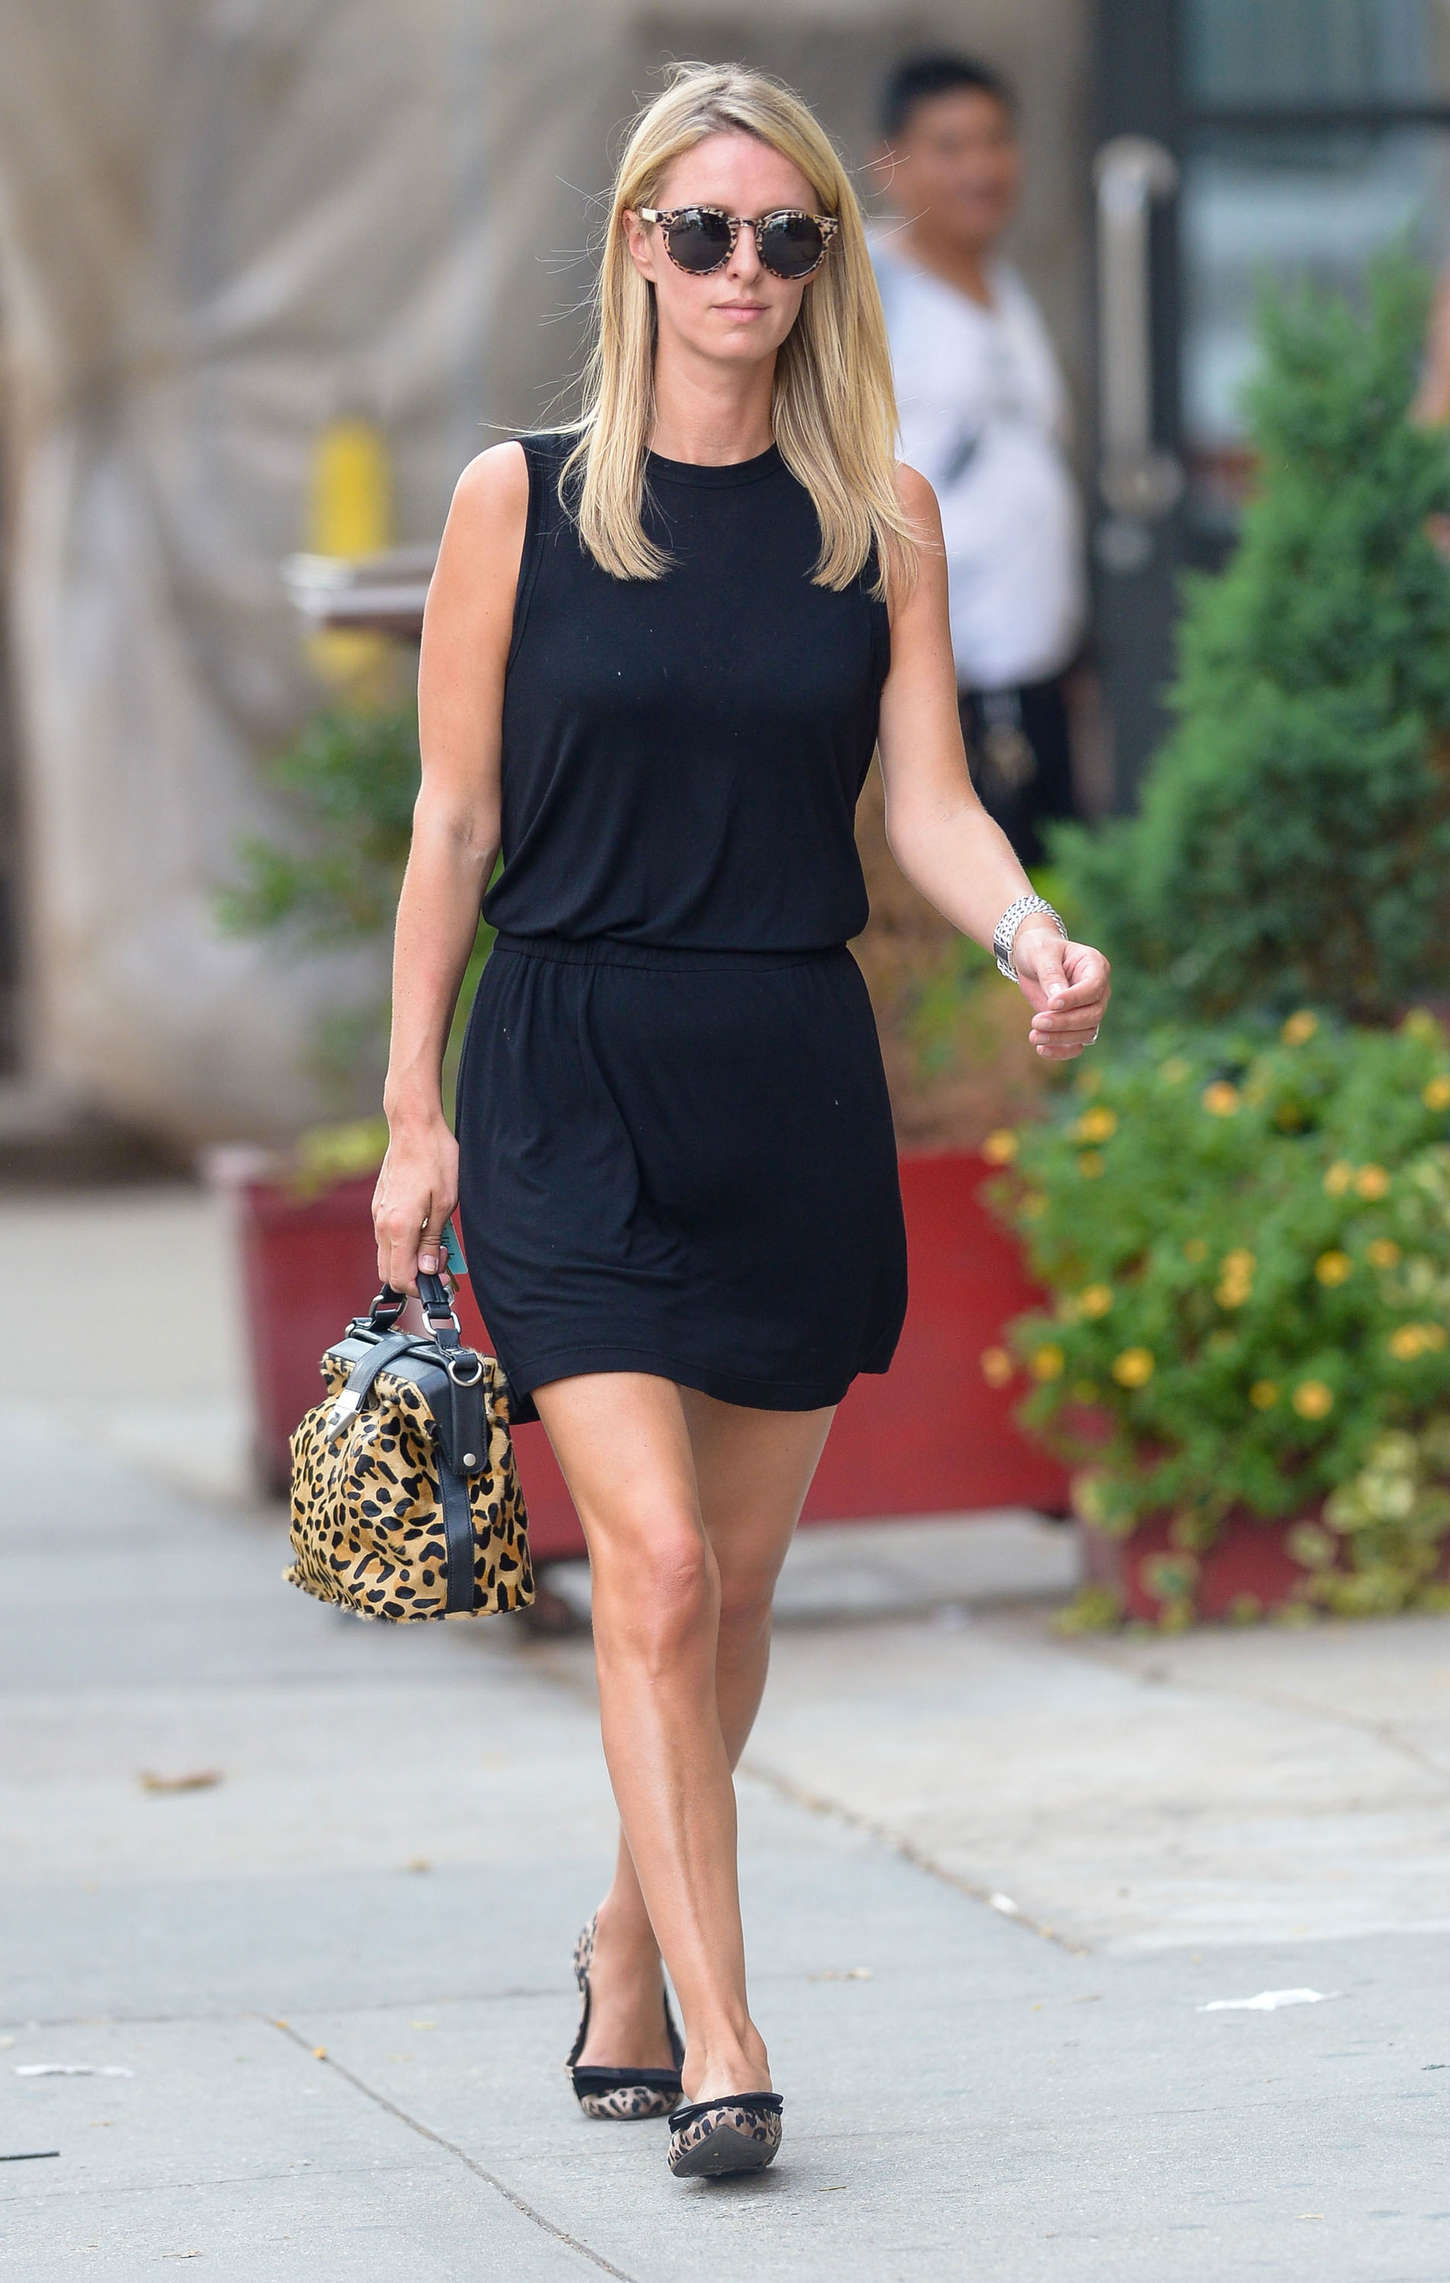 Nicky Hilton in Black Mini Dress out in NYC